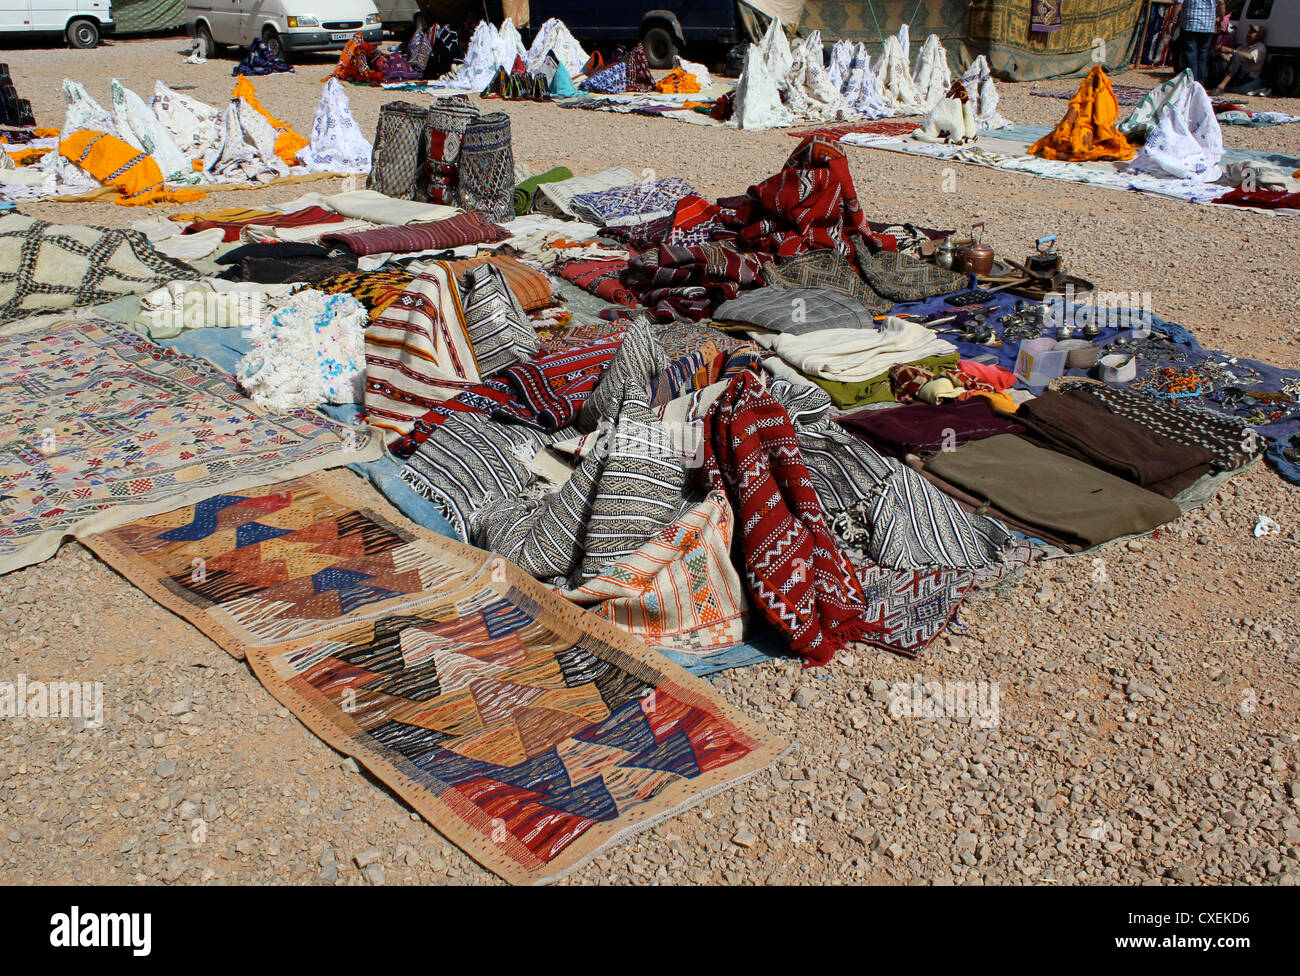 A Display Of Rugs For Sale At Azrou Souk In Morocco   Stock Photo